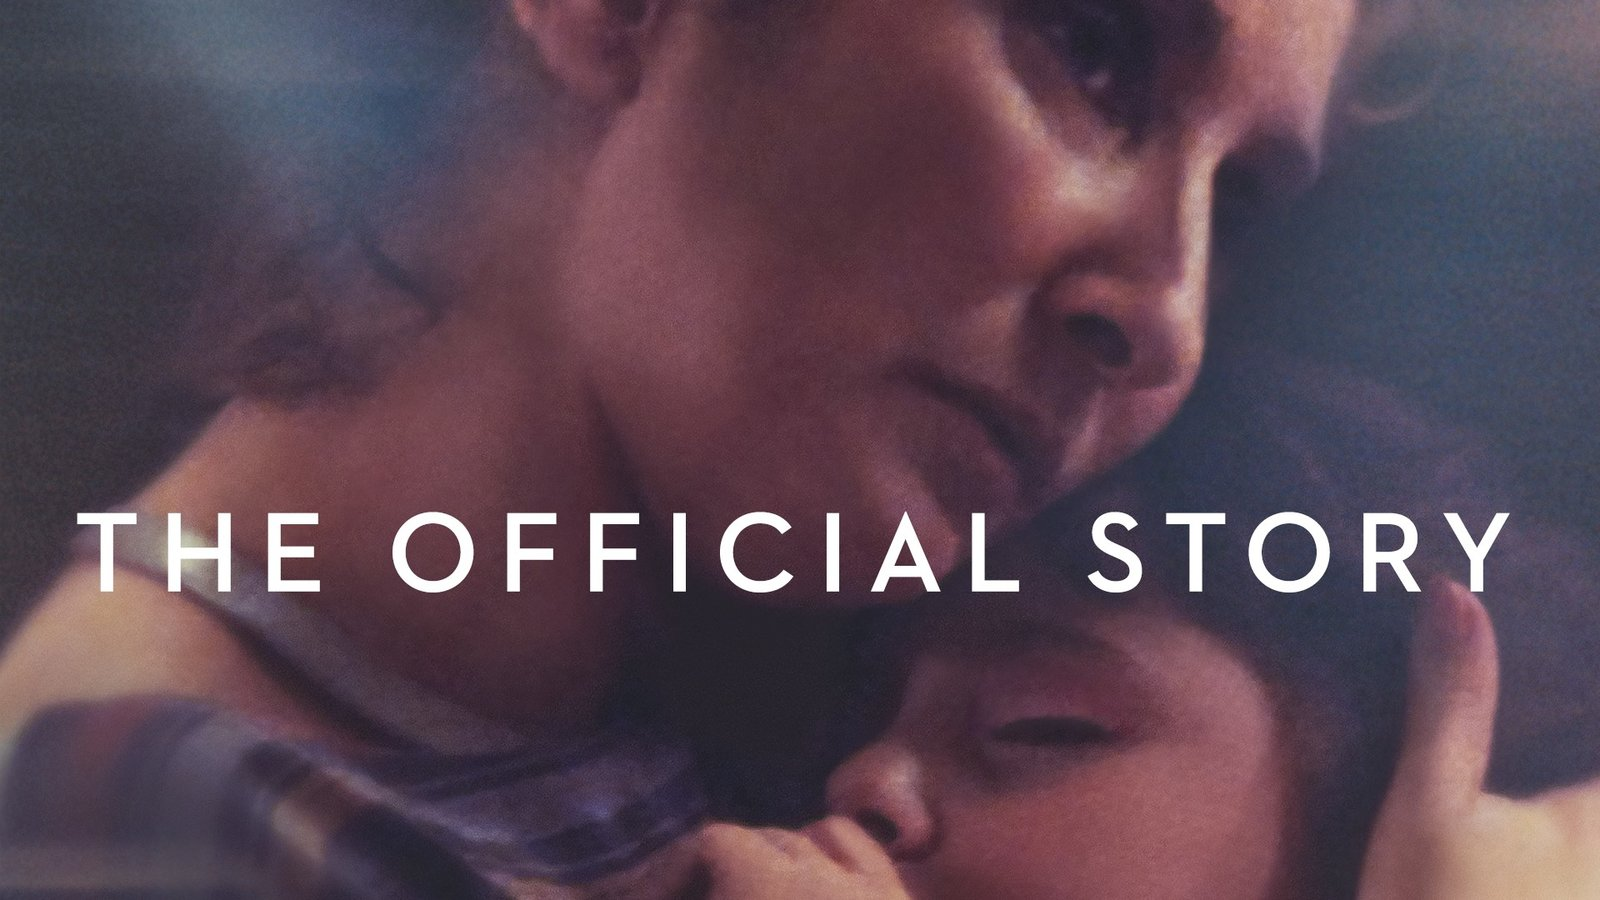 The Official Story - La historia oficial